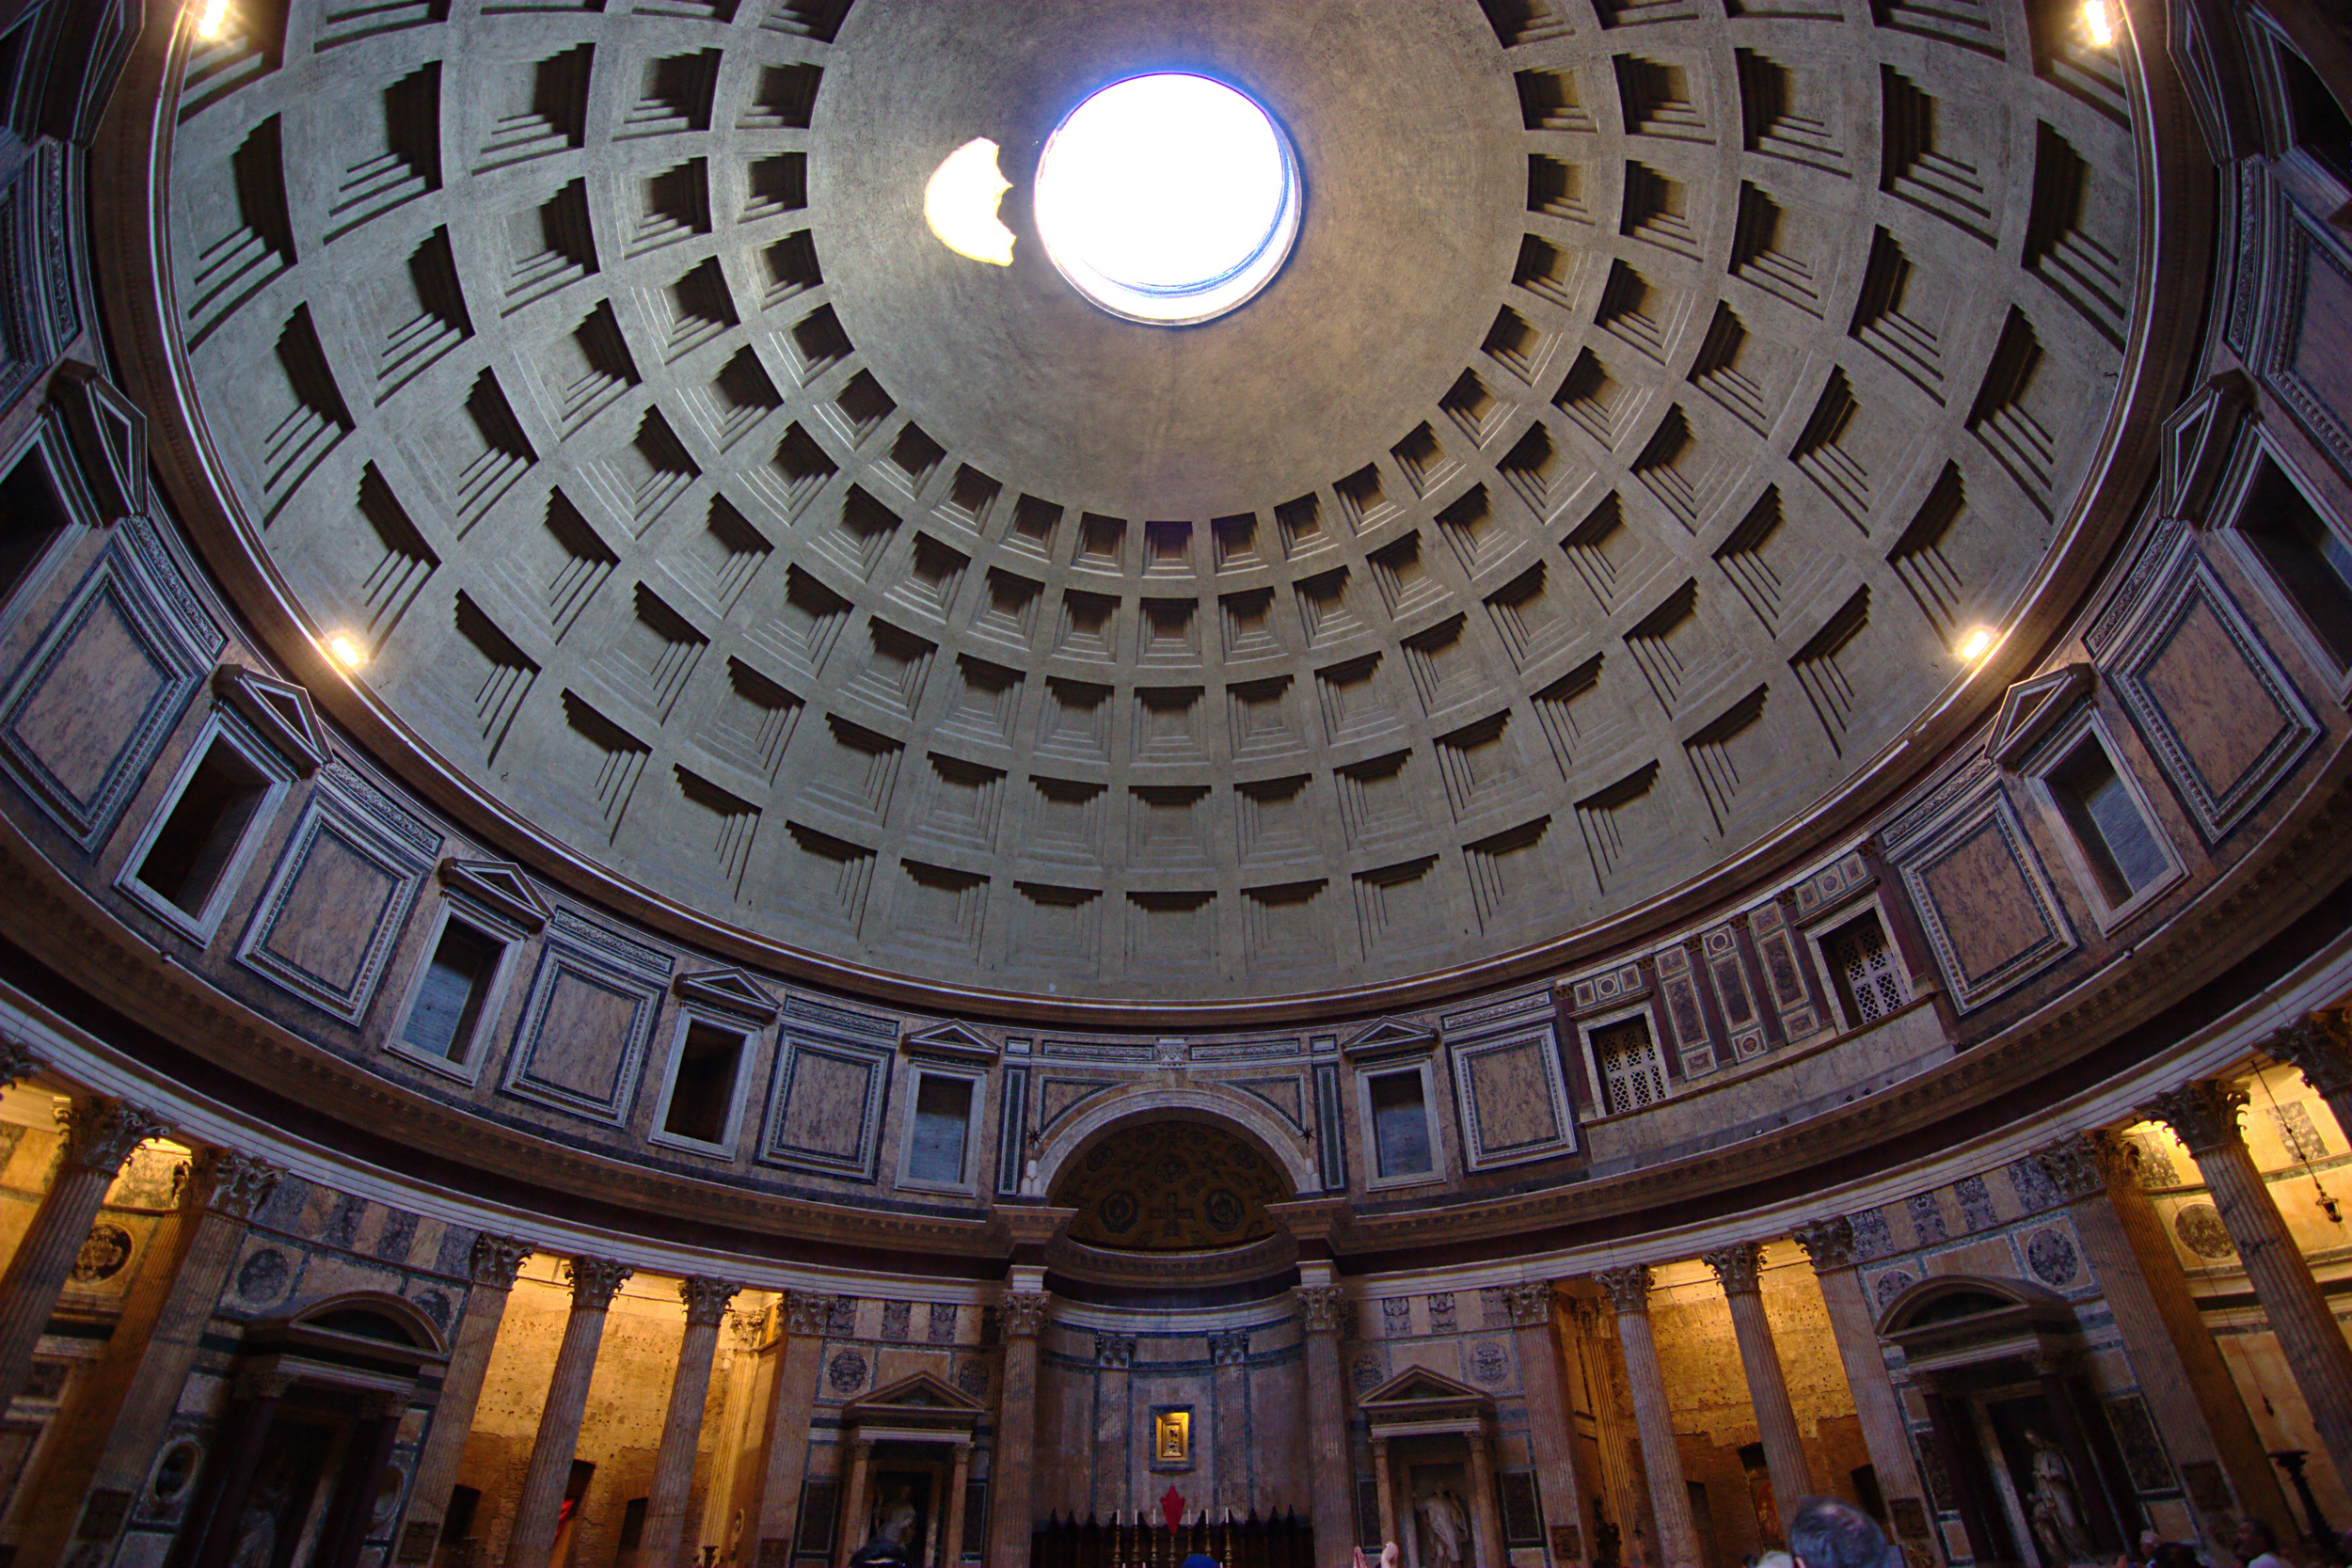 The ceiling of the Pantheon in Rome — the largest unreinforced concrete dome in the world — still standing 2,000 years later. Image © Biker Jun  used with permission of Creative Commons license.